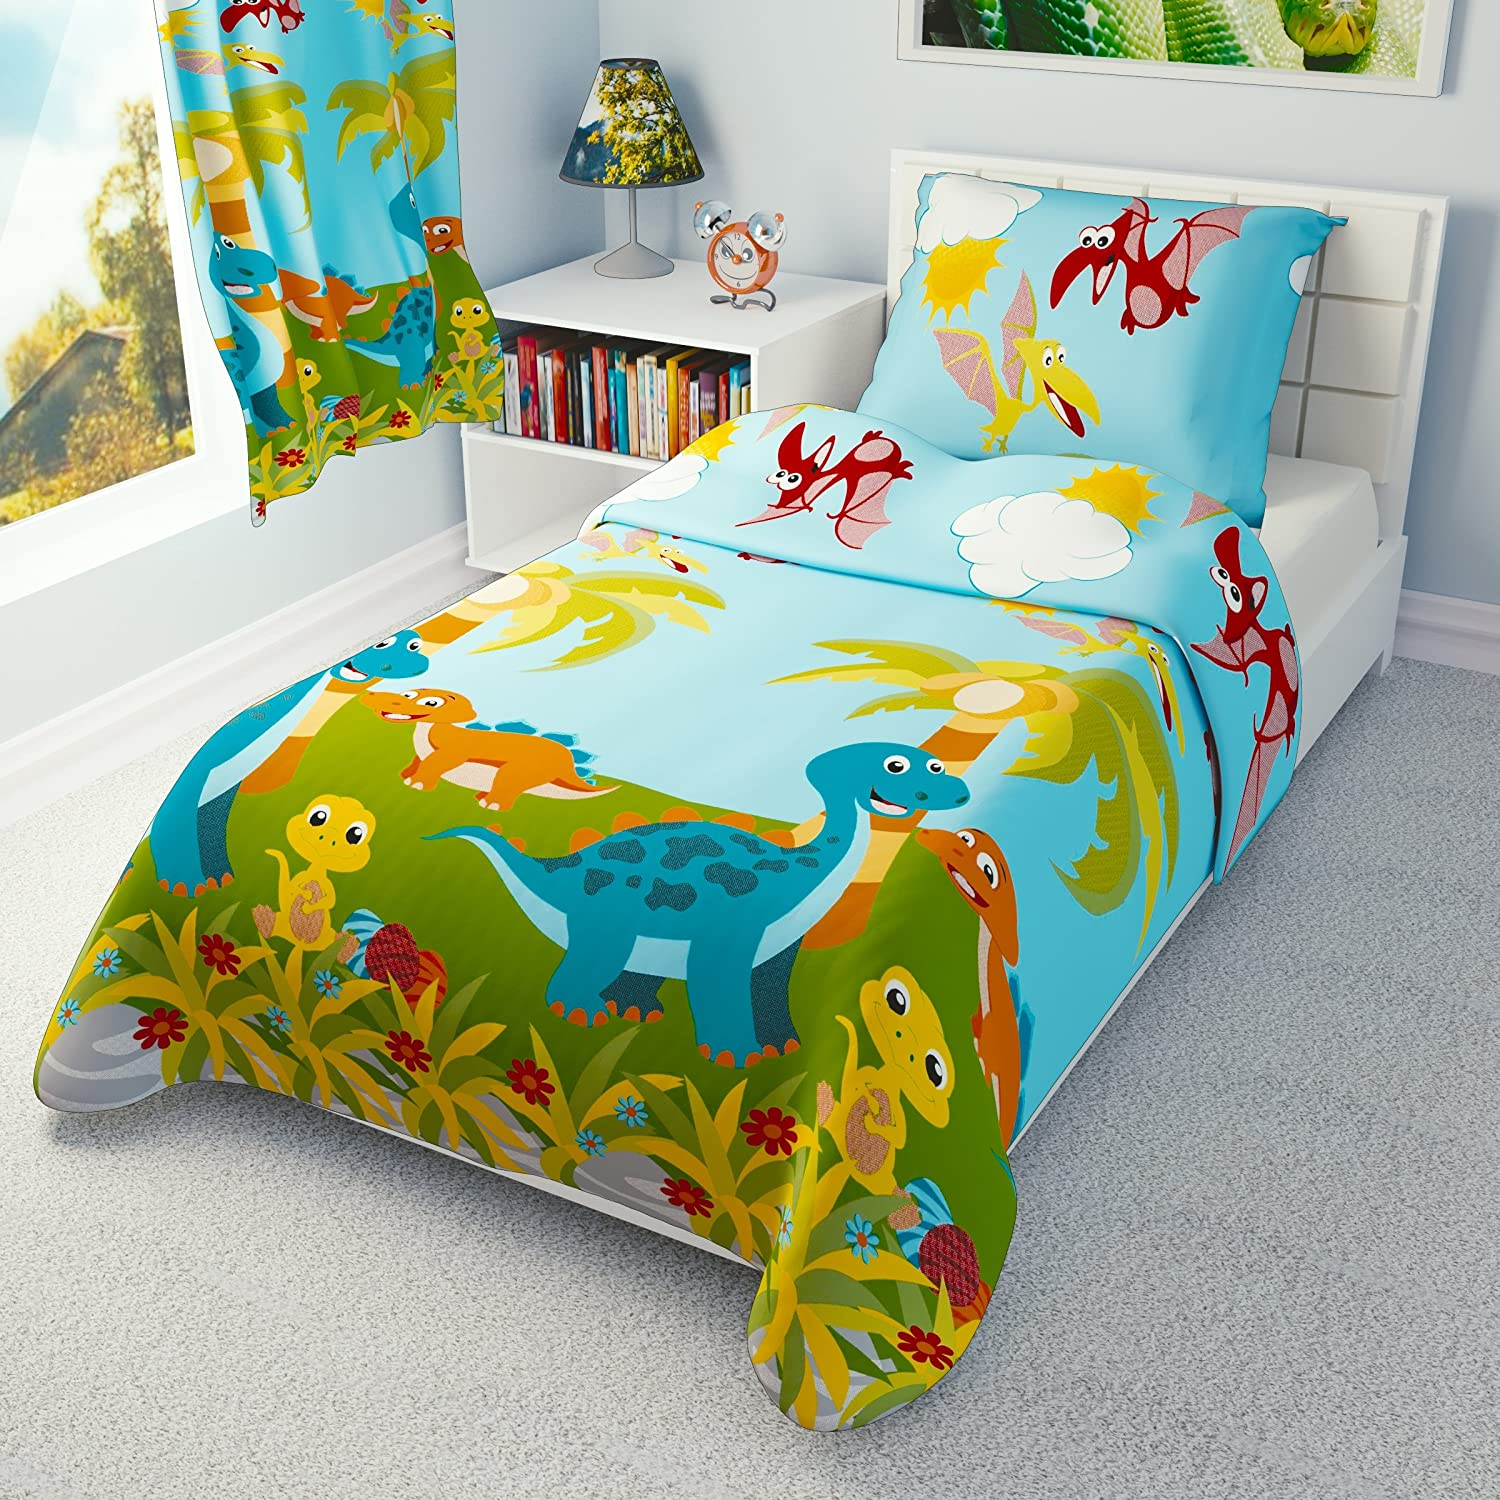 Babies Island IKEA Cot Bedding Duvet Cover Pillowcase 110 x 125 cm - many designs available (Little Dinosaur) Babies-Island